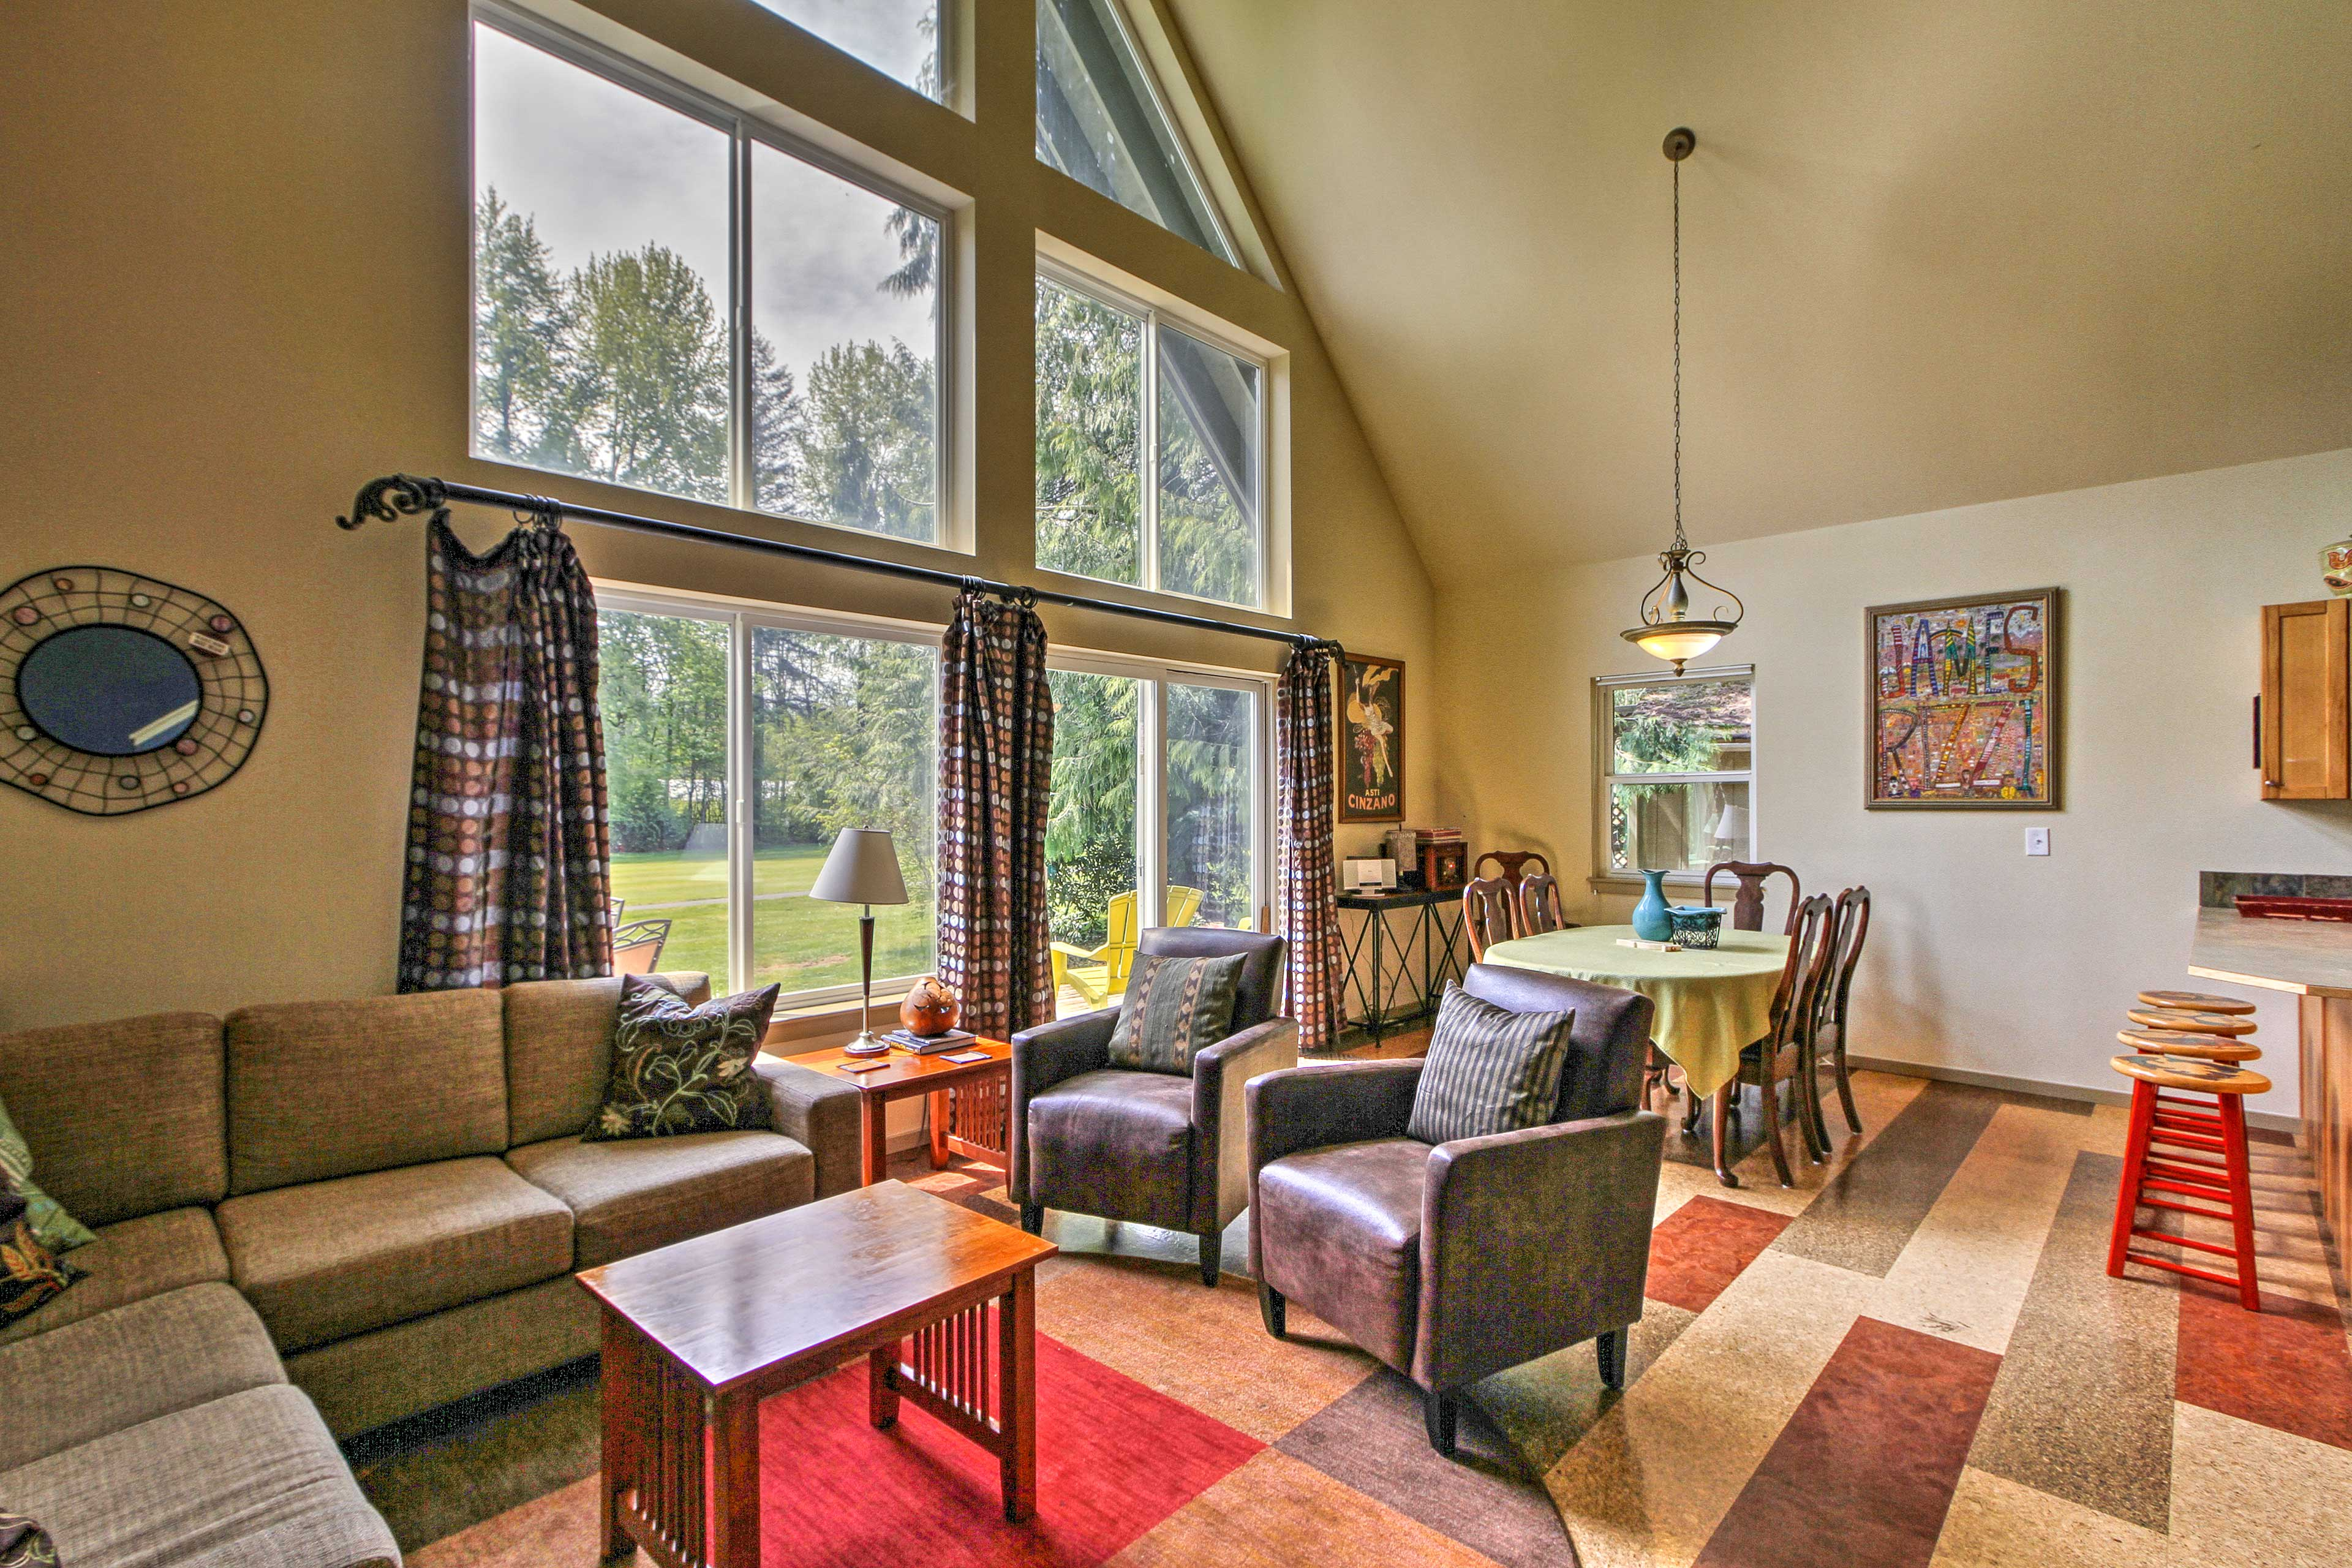 The well-appointed interior boasts a bedroom, loft, and full bath.